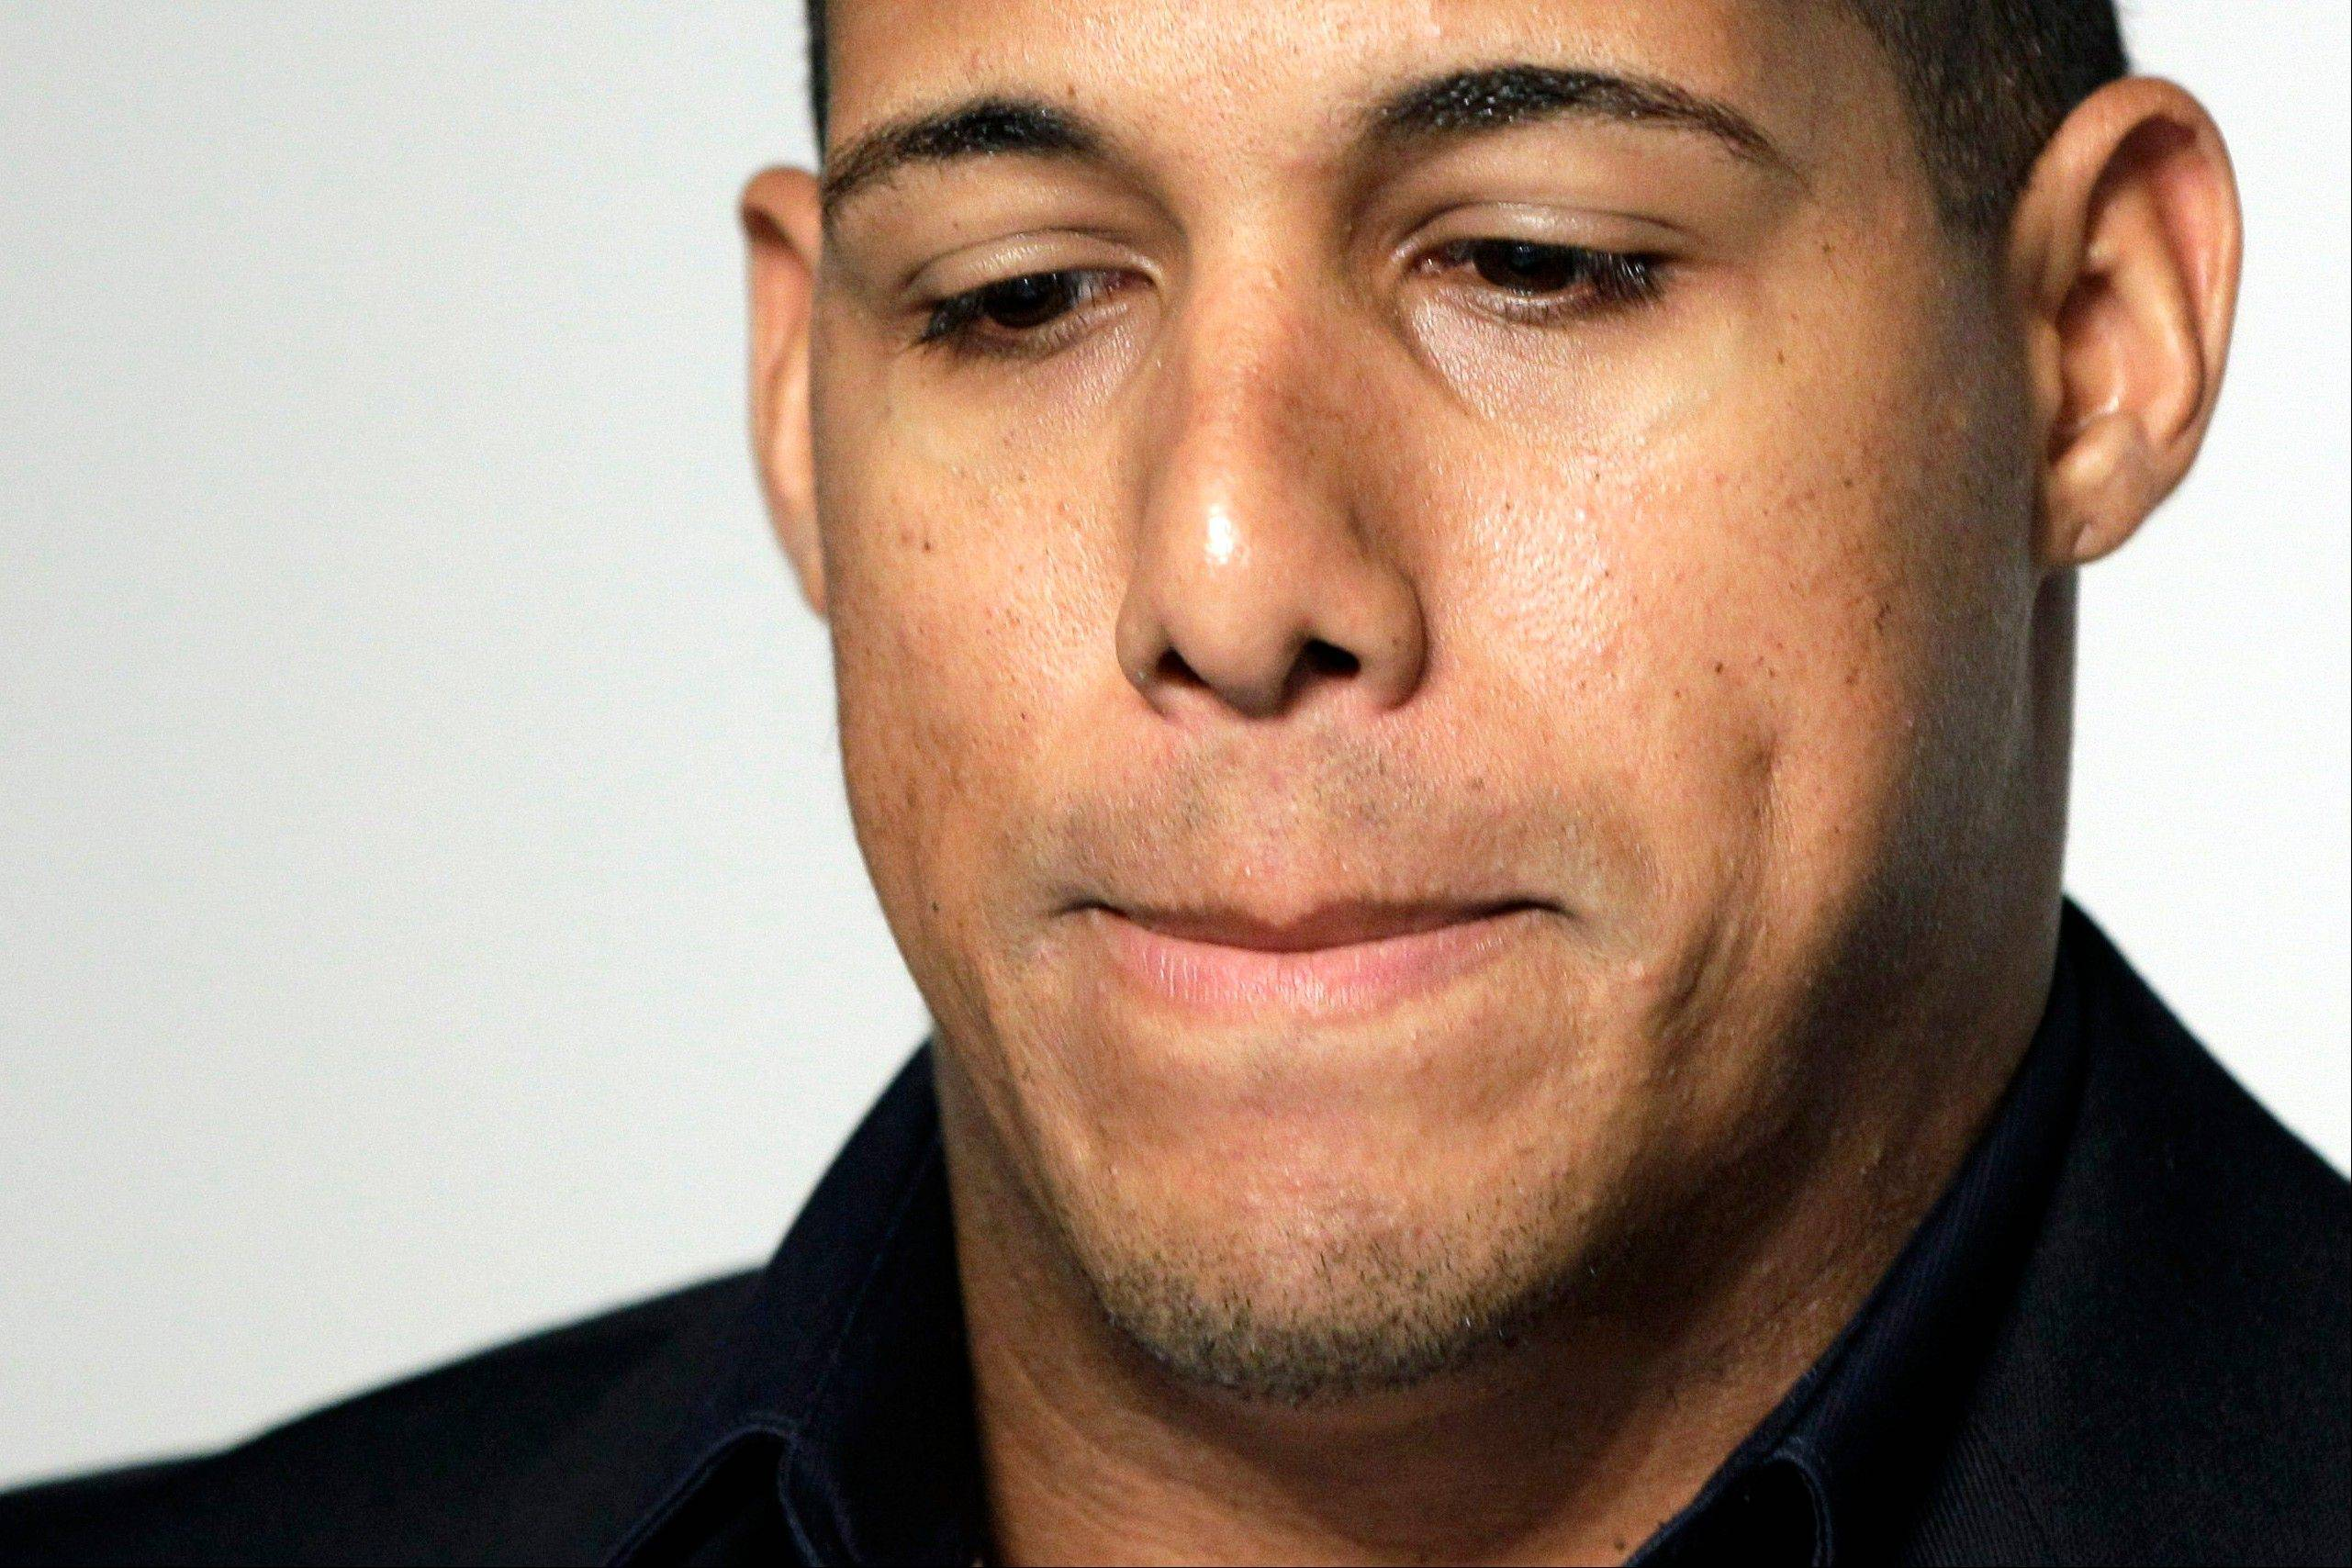 Toronto's Yunel Escobar pauses during a news conference Tuesday at Yankee Stadium in New York. Escobar was suspended for three games Tuesday by the Blue Jays for wearing eye-black displaying a homophobic slur written in Spanish during last Saturday's game against the Boston Red Sox.